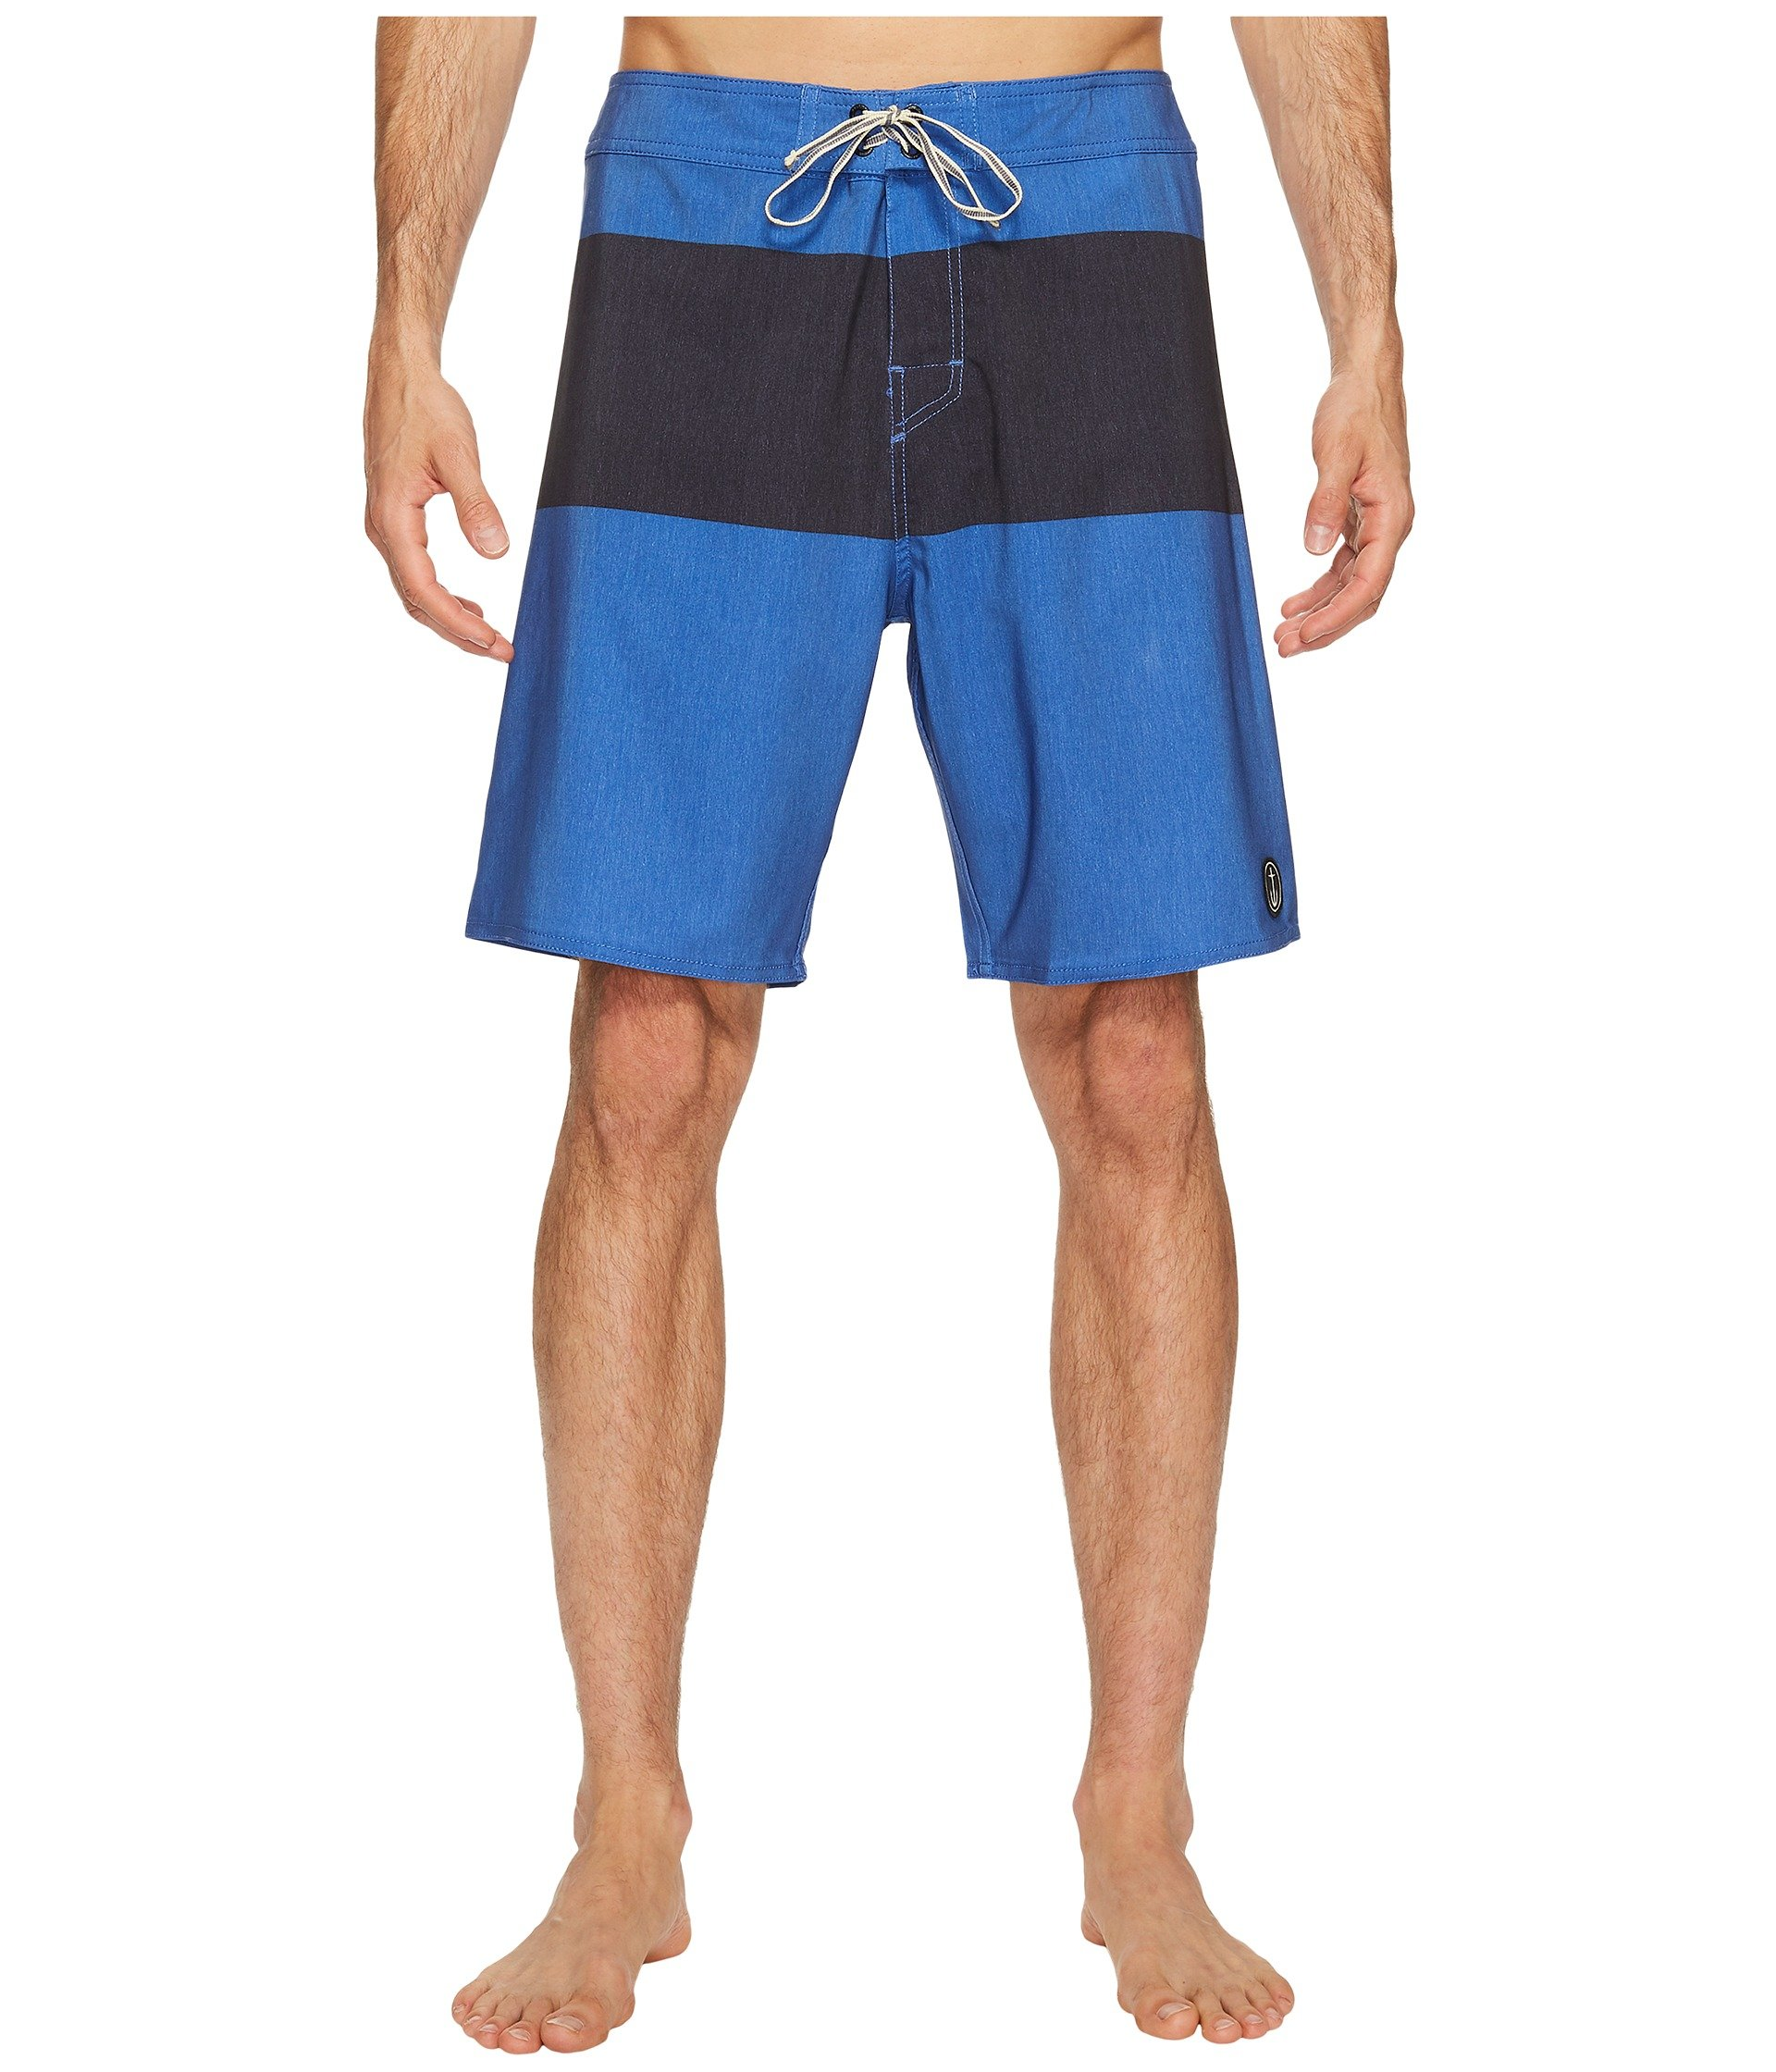 CAPTAIN FIN Harry Panel Boardshort, Blue